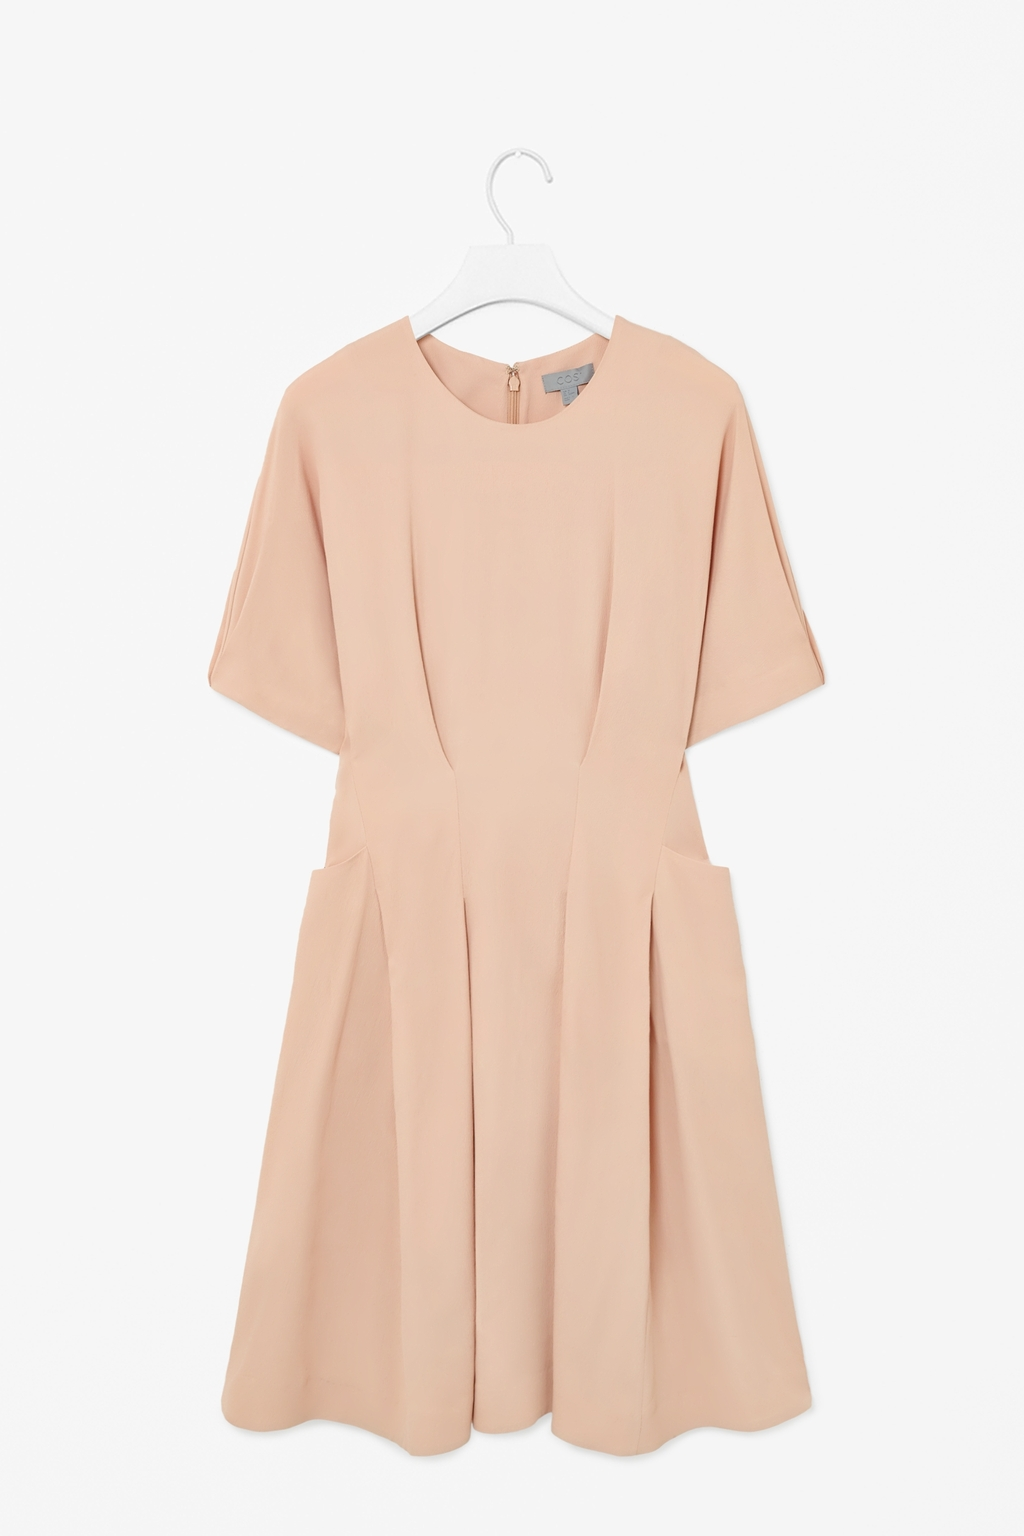 Pleated Waist Dress - pattern: plain; predominant colour: nude; length: just above the knee; fit: fitted at waist & bust; style: fit & flare; fibres: viscose/rayon - stretch; neckline: crew; hip detail: adds bulk at the hips; sleeve length: short sleeve; sleeve style: standard; pattern type: fabric; texture group: other - light to midweight; occasions: creative work; trends: sorbet shades; season: s/s 2014